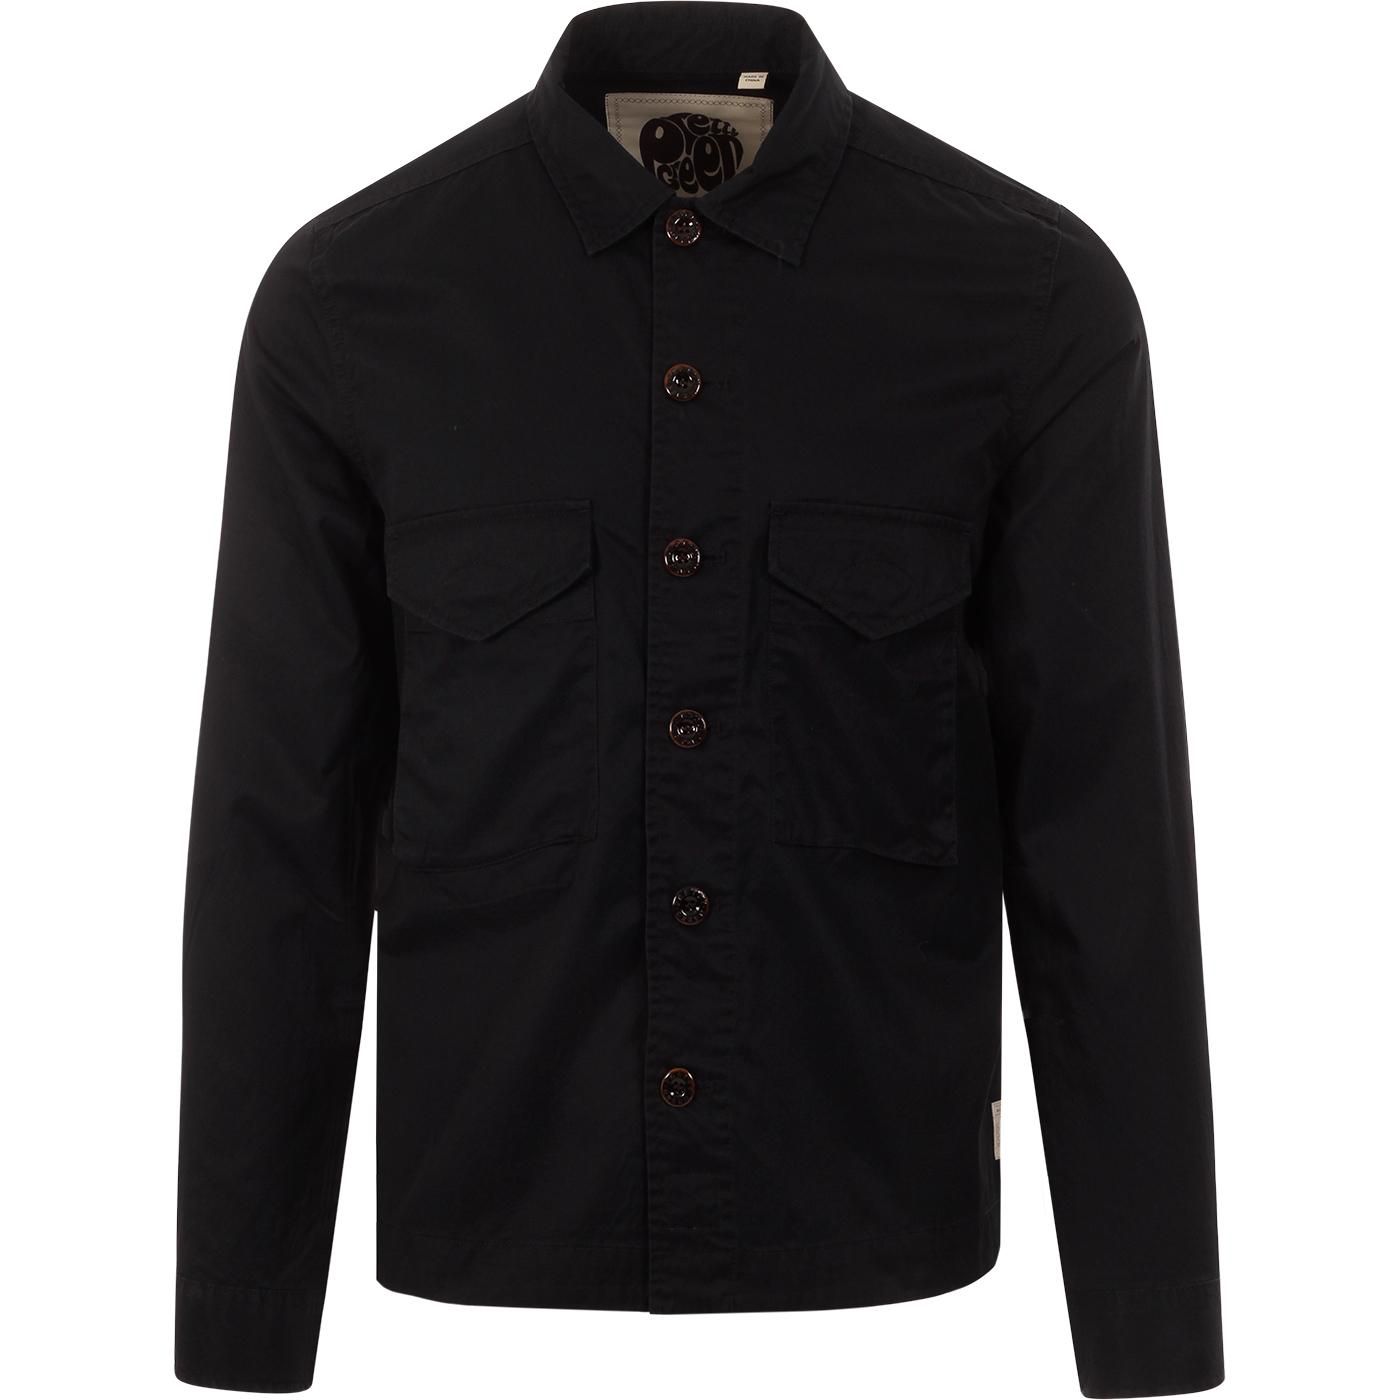 PRETTY GREEN Mod Cotton Button Through Overshirt B